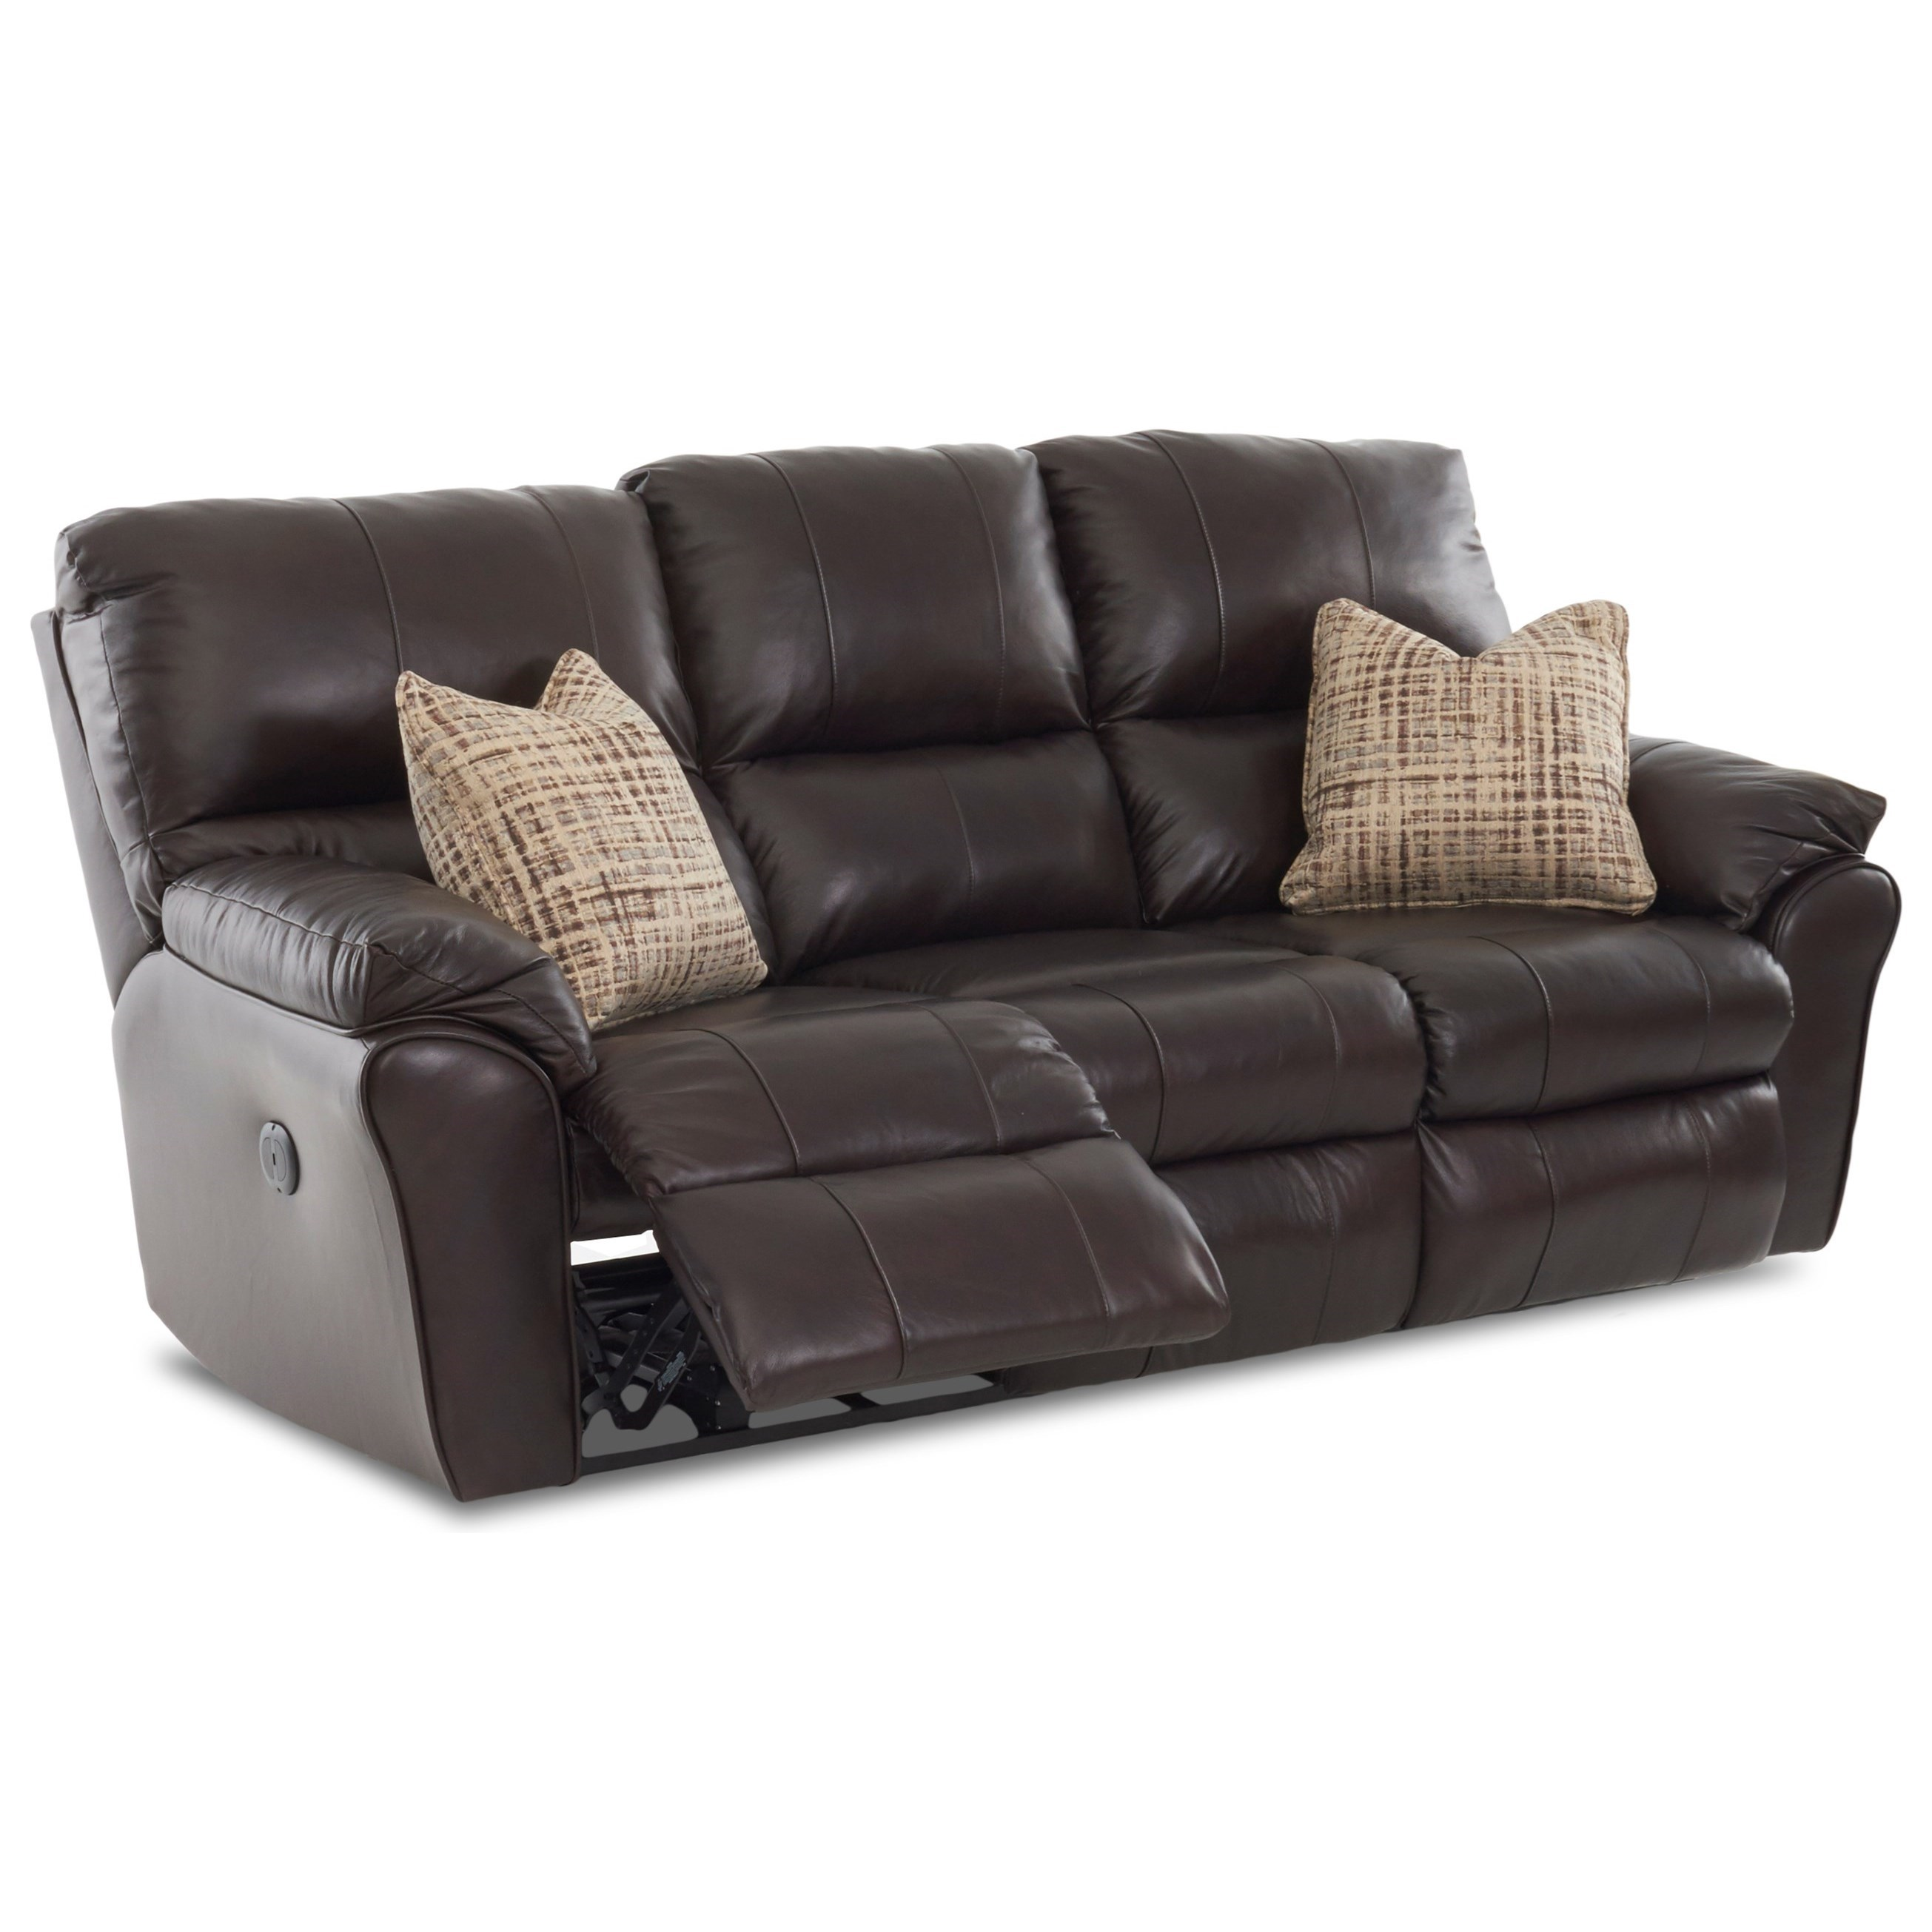 Bateman Leather Armchair: Klaussner Bateman Casual Reclining Sofa With 2 Power